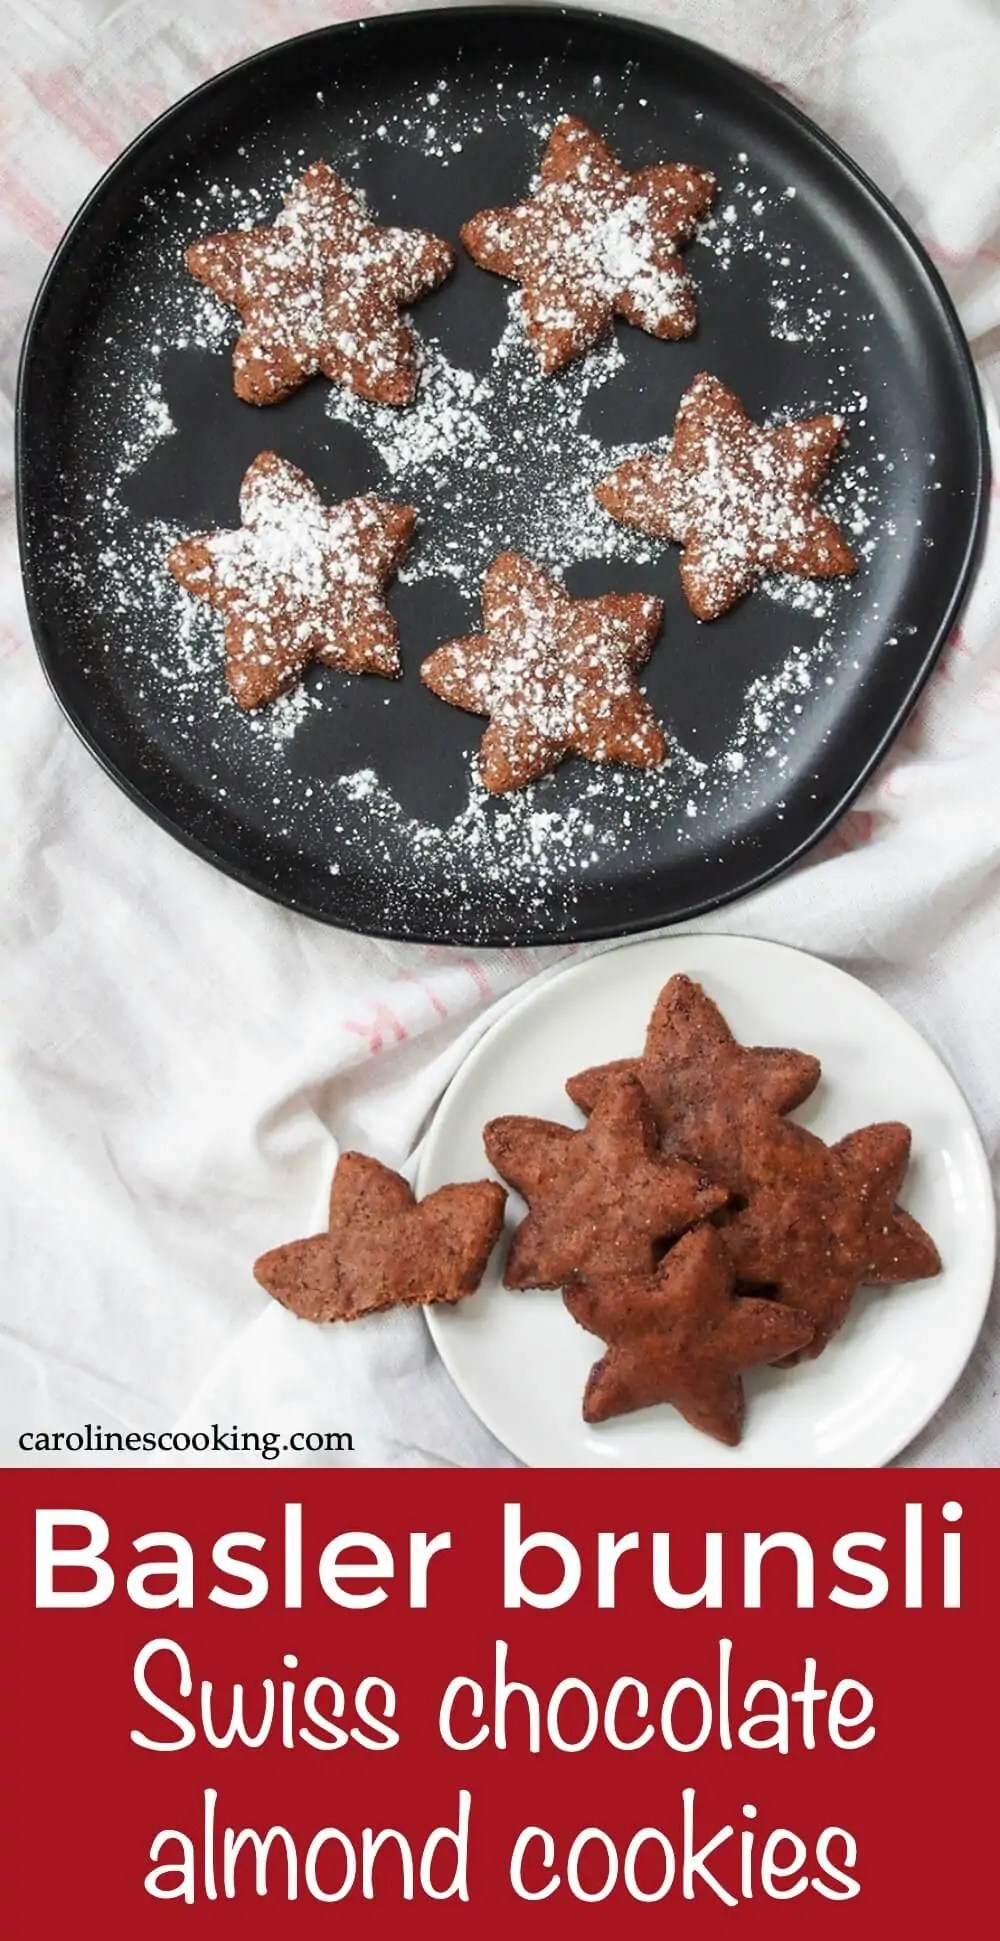 Basler brunsli are a traditional Swiss Christmas cookie made with almonds, chocolate and a touch of spice. You might need to wait a little, but these cookies are easy, naturally gluten free and deliciously good. #cookie #chocolate #glutenfree #christmascookie